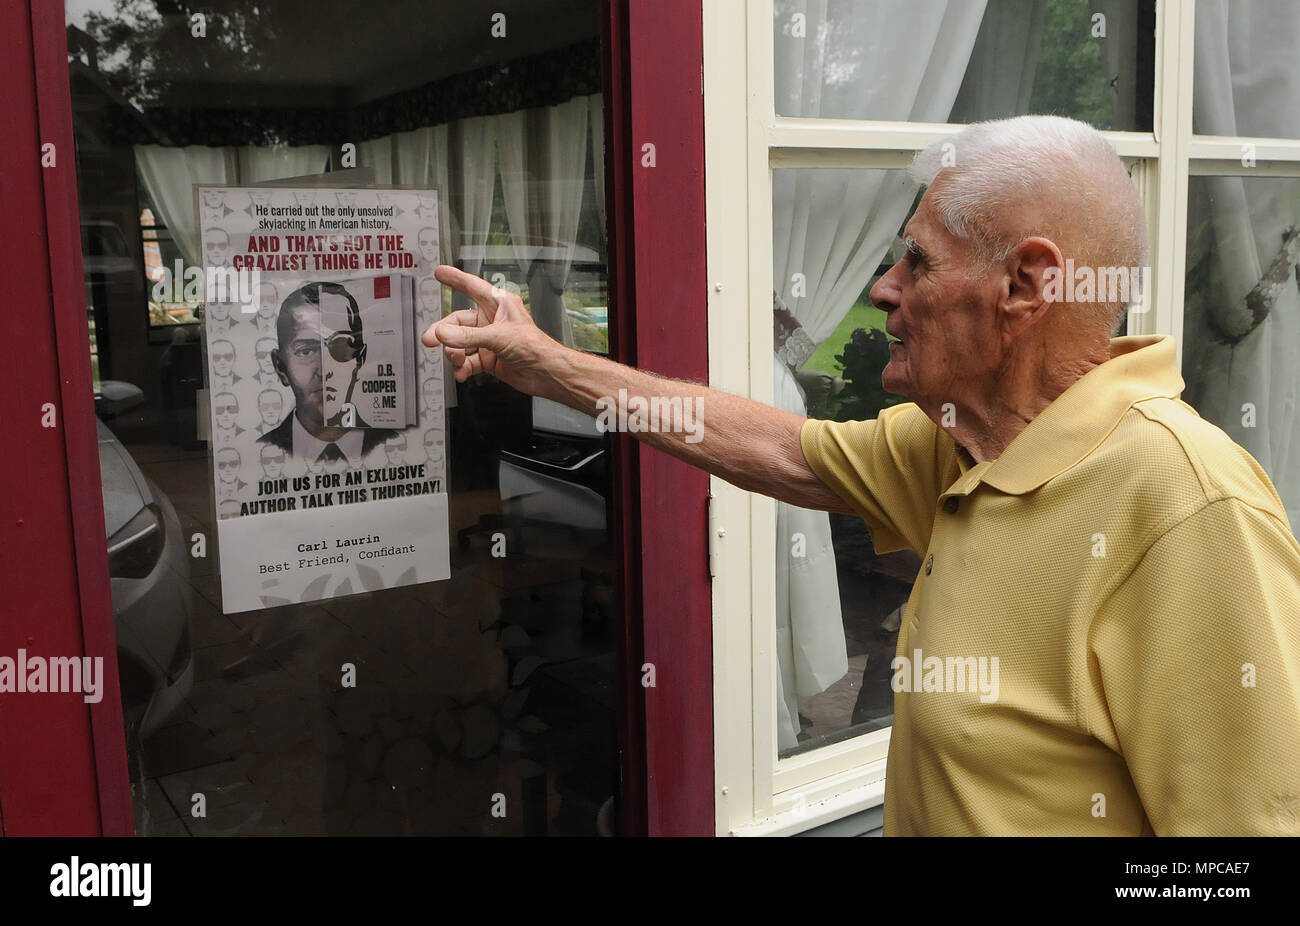 Florida, USA. 22nd May, 2018. Carl Laurin, the author of the book, 'D.B. Cooper & Me: A Criminal, a Spy, My Best Friend', which was released on May 17, 2018, points to an advertisement for the book at his home on May 22, 2018 in DeLand, Florida. The book chronicles the confessions of Laurin's longtime friend, Walter R. Reca, who, around 2008, related to Laurin that he committed the infamous 1971 hijacking of a Northwest Orient flight from Portland to Seattle. Credit: Paul Hennessy/Alamy Live News - Stock Image